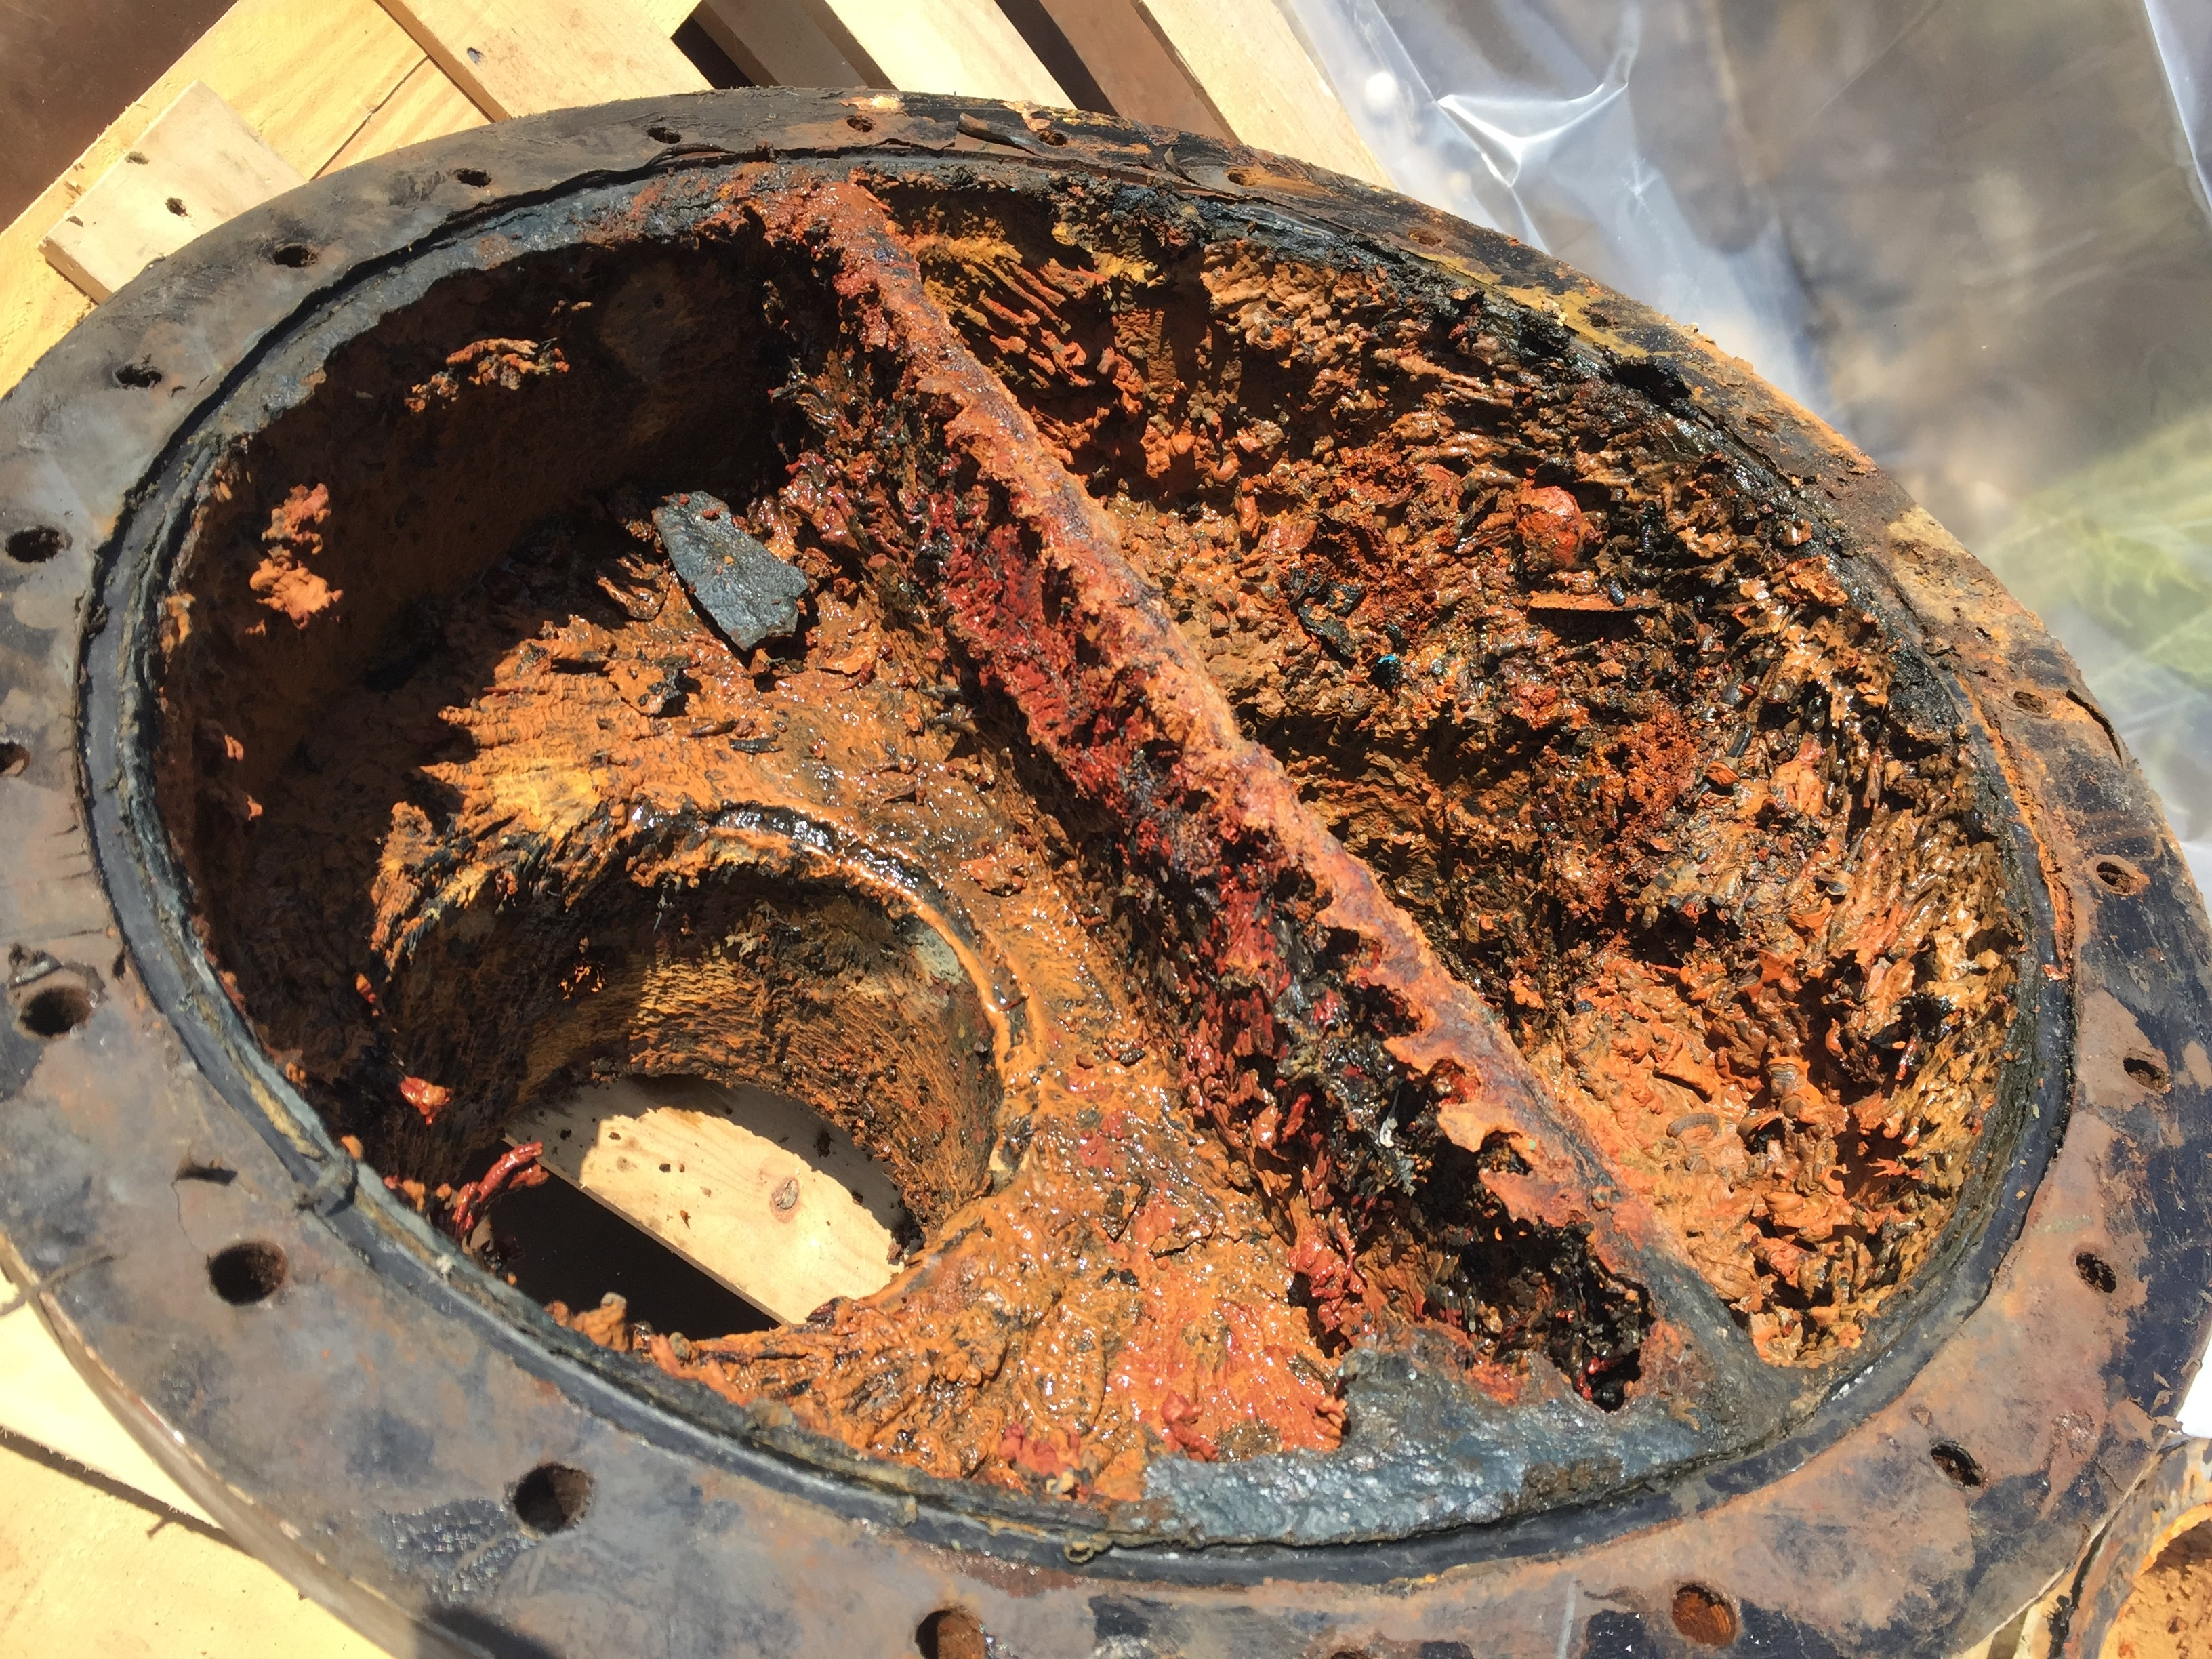 Heat Exchanger Repaired Using Epoxy Composites And Coatings